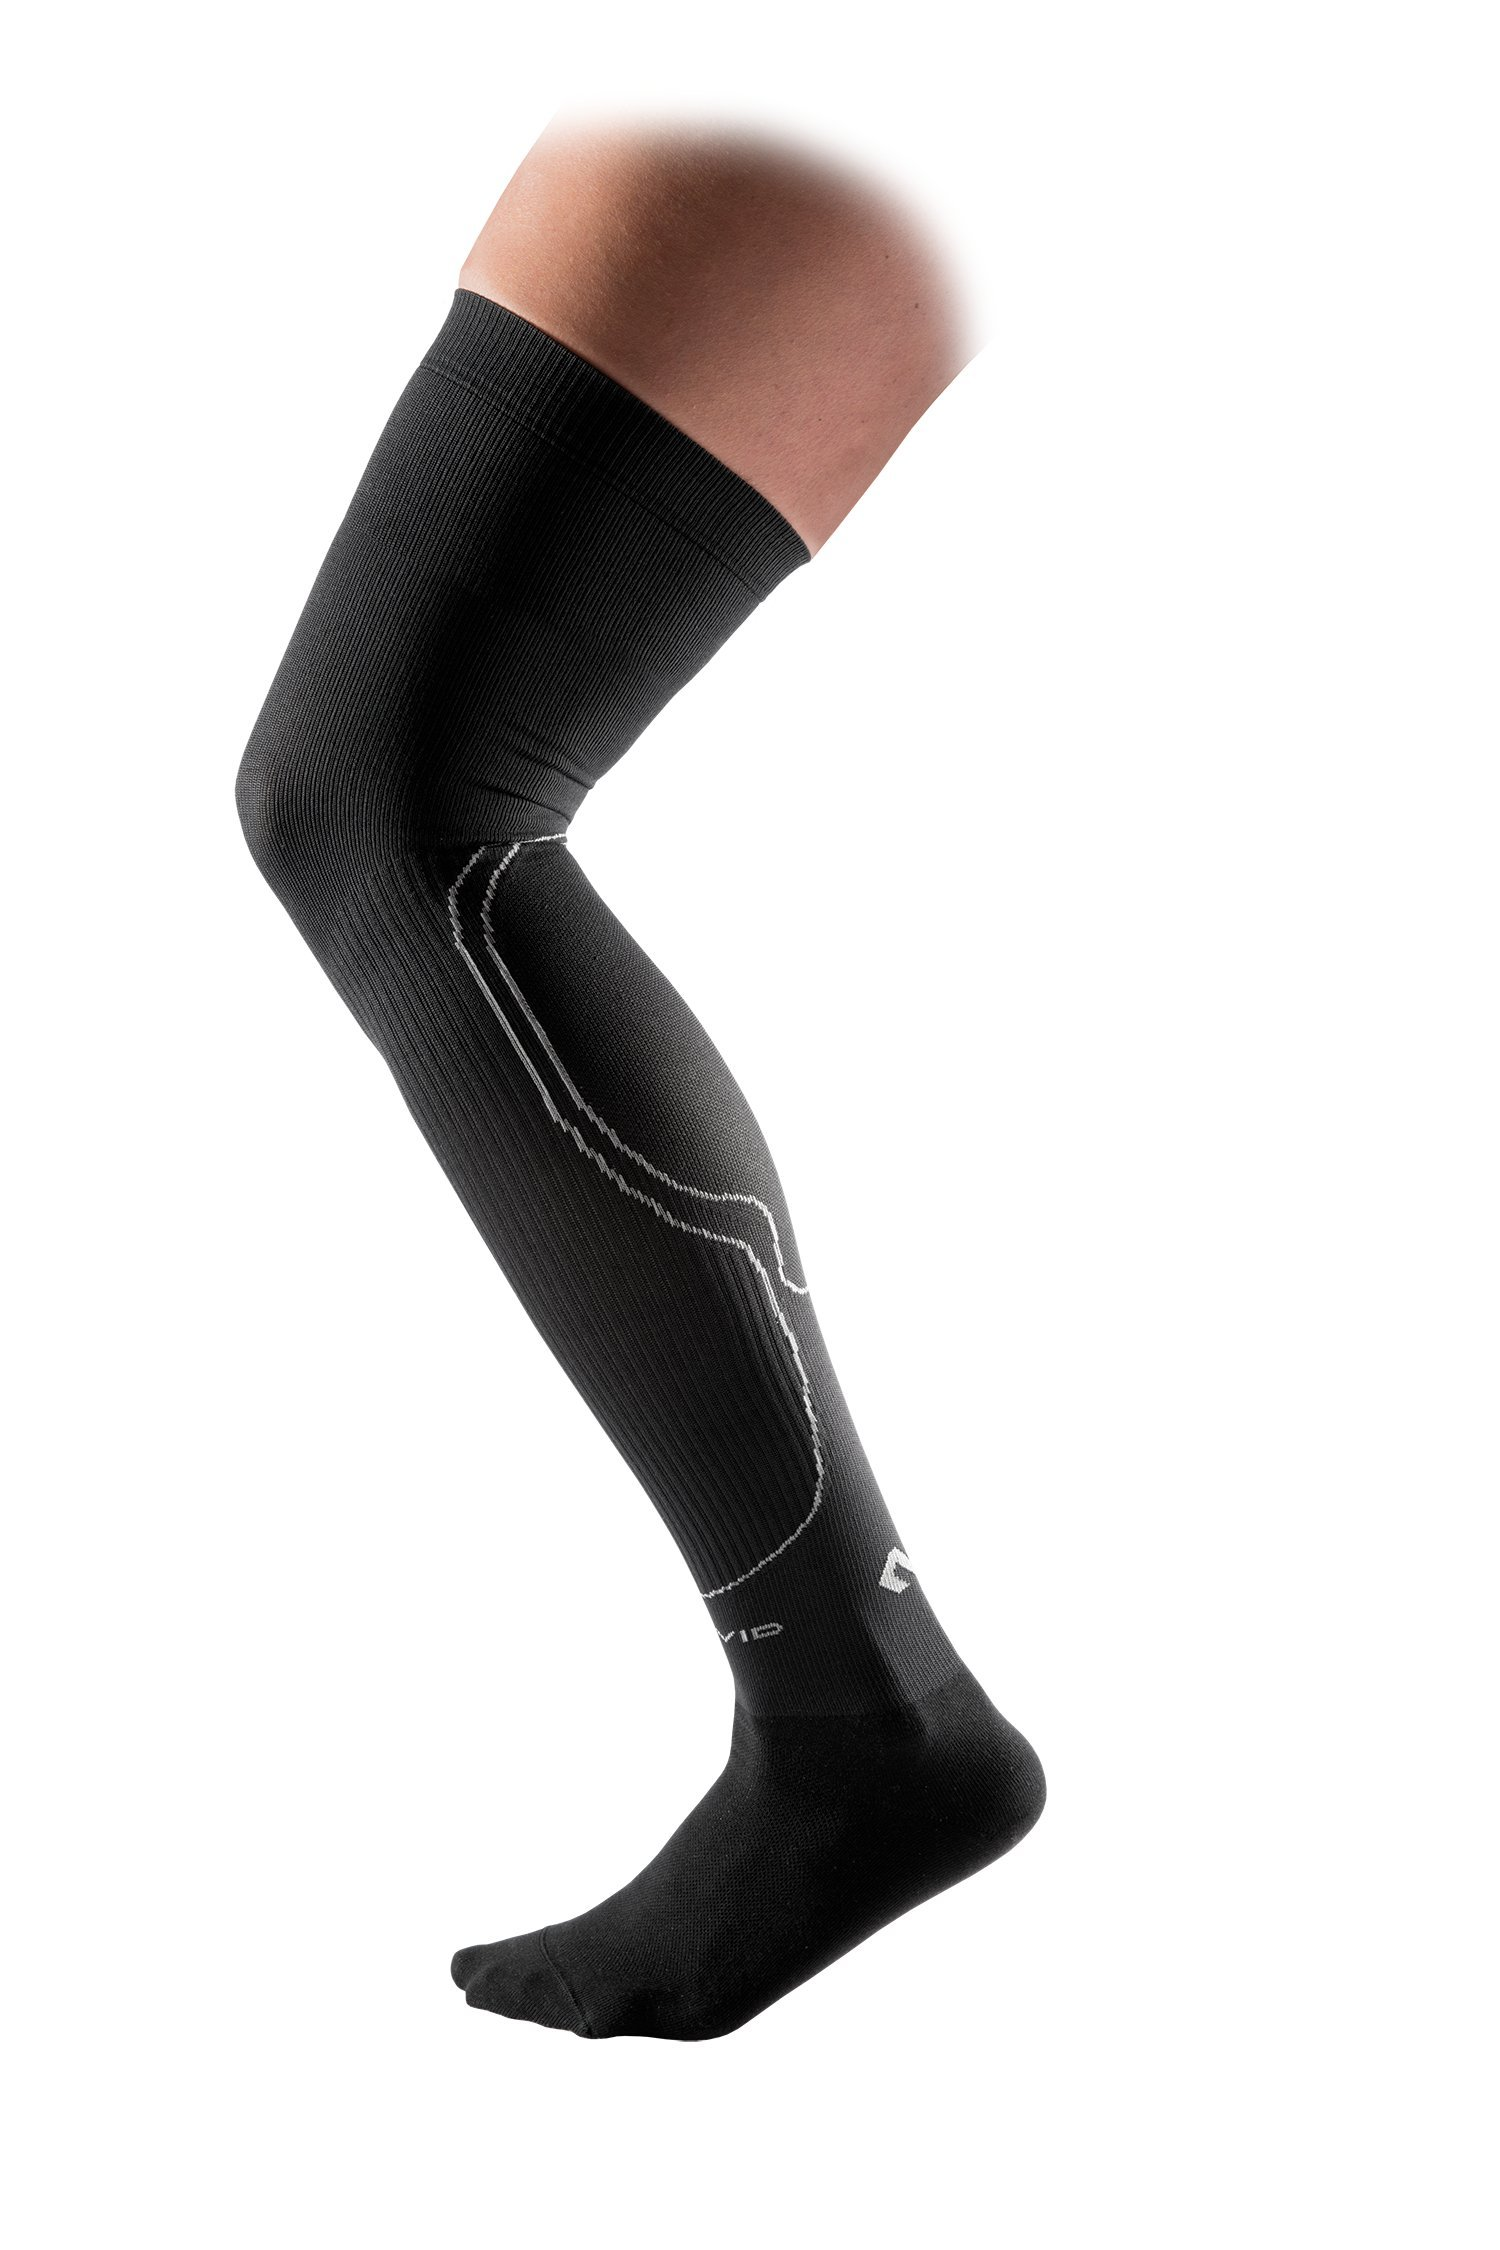 McDavid Mid-Thigh Rebound Compression Socks , Black, Medium by McDavid